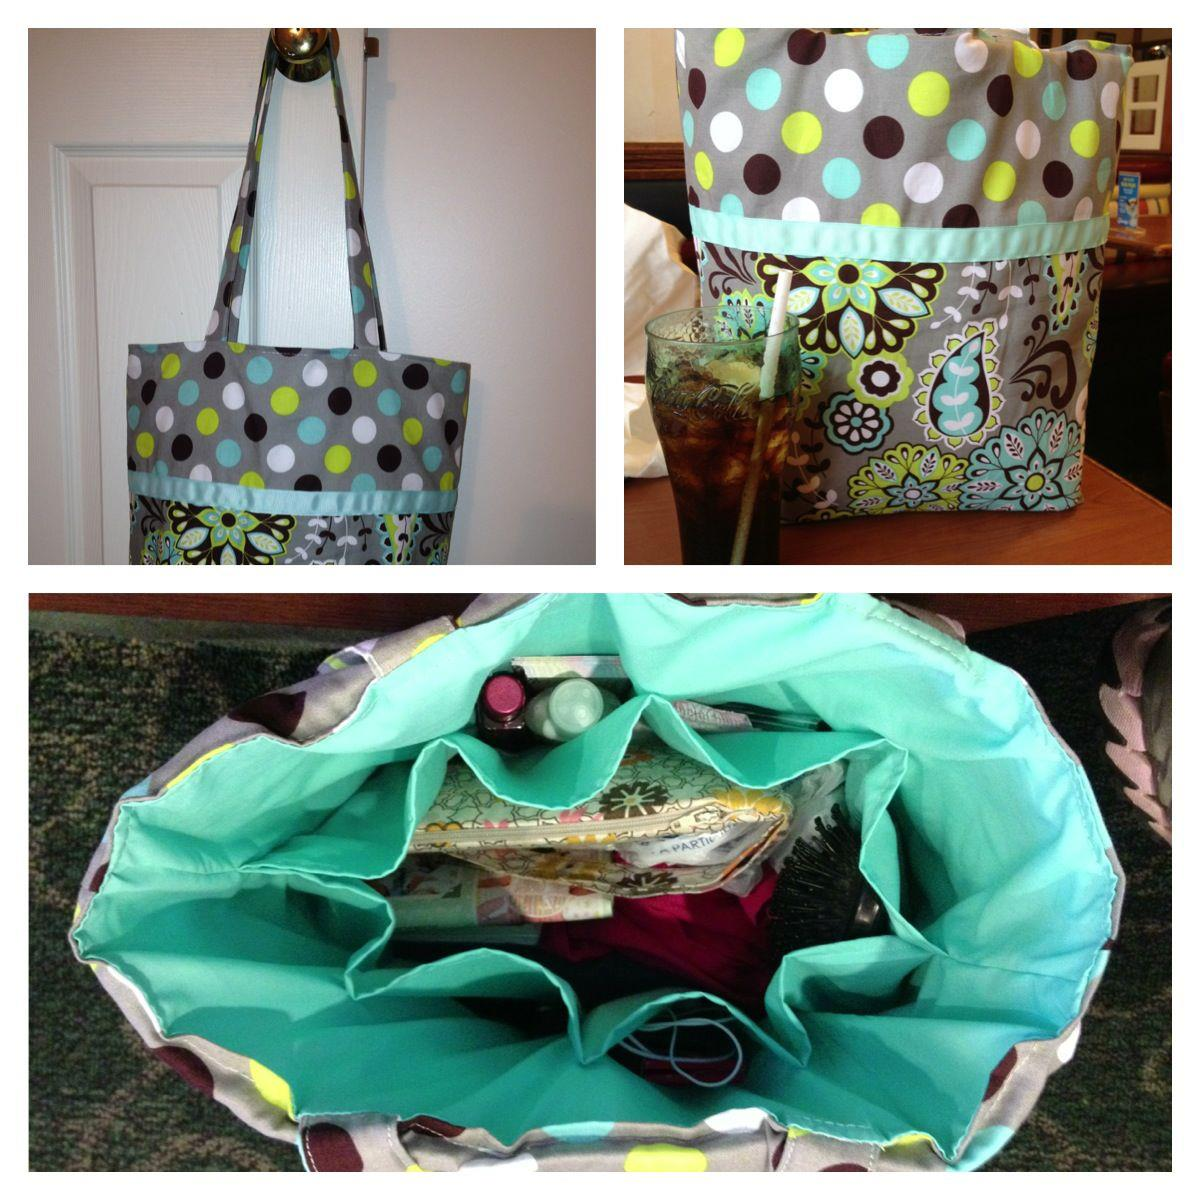 Tote Style Purse or $20 Credit